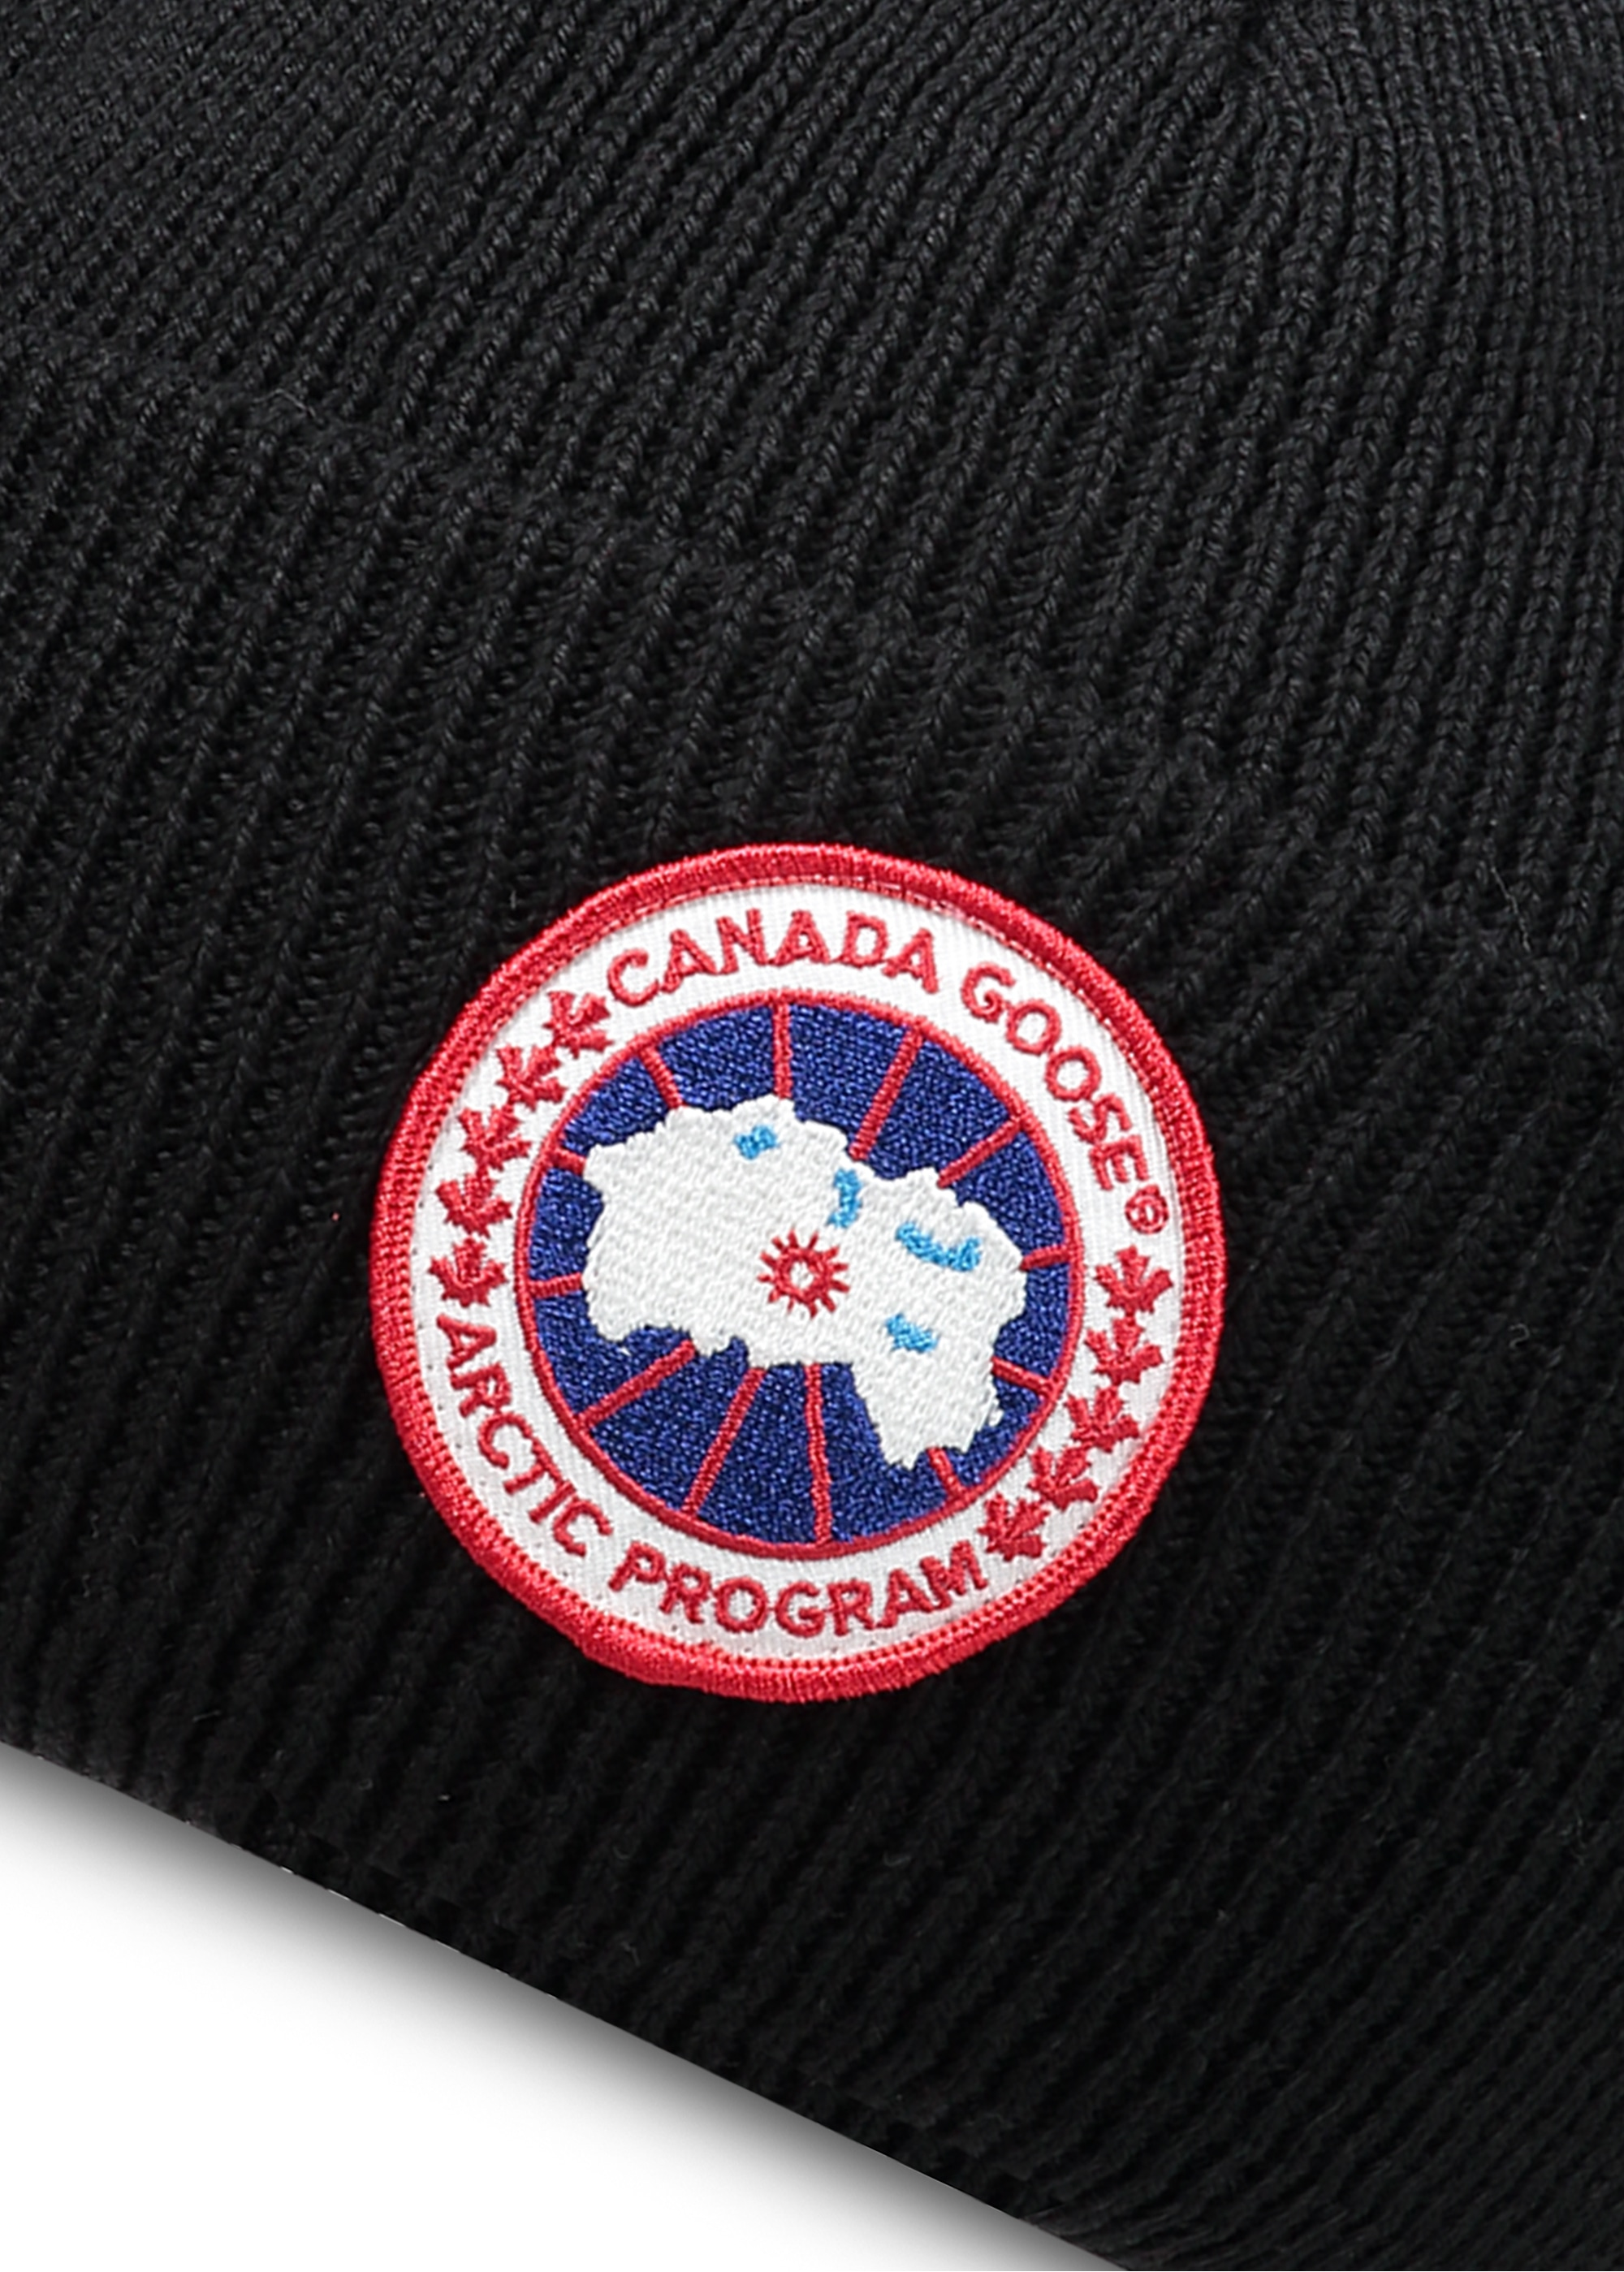 49a618701aa5 Canada Goose Arctic Disc Toque Hat - Black - Headwear from Triads UK